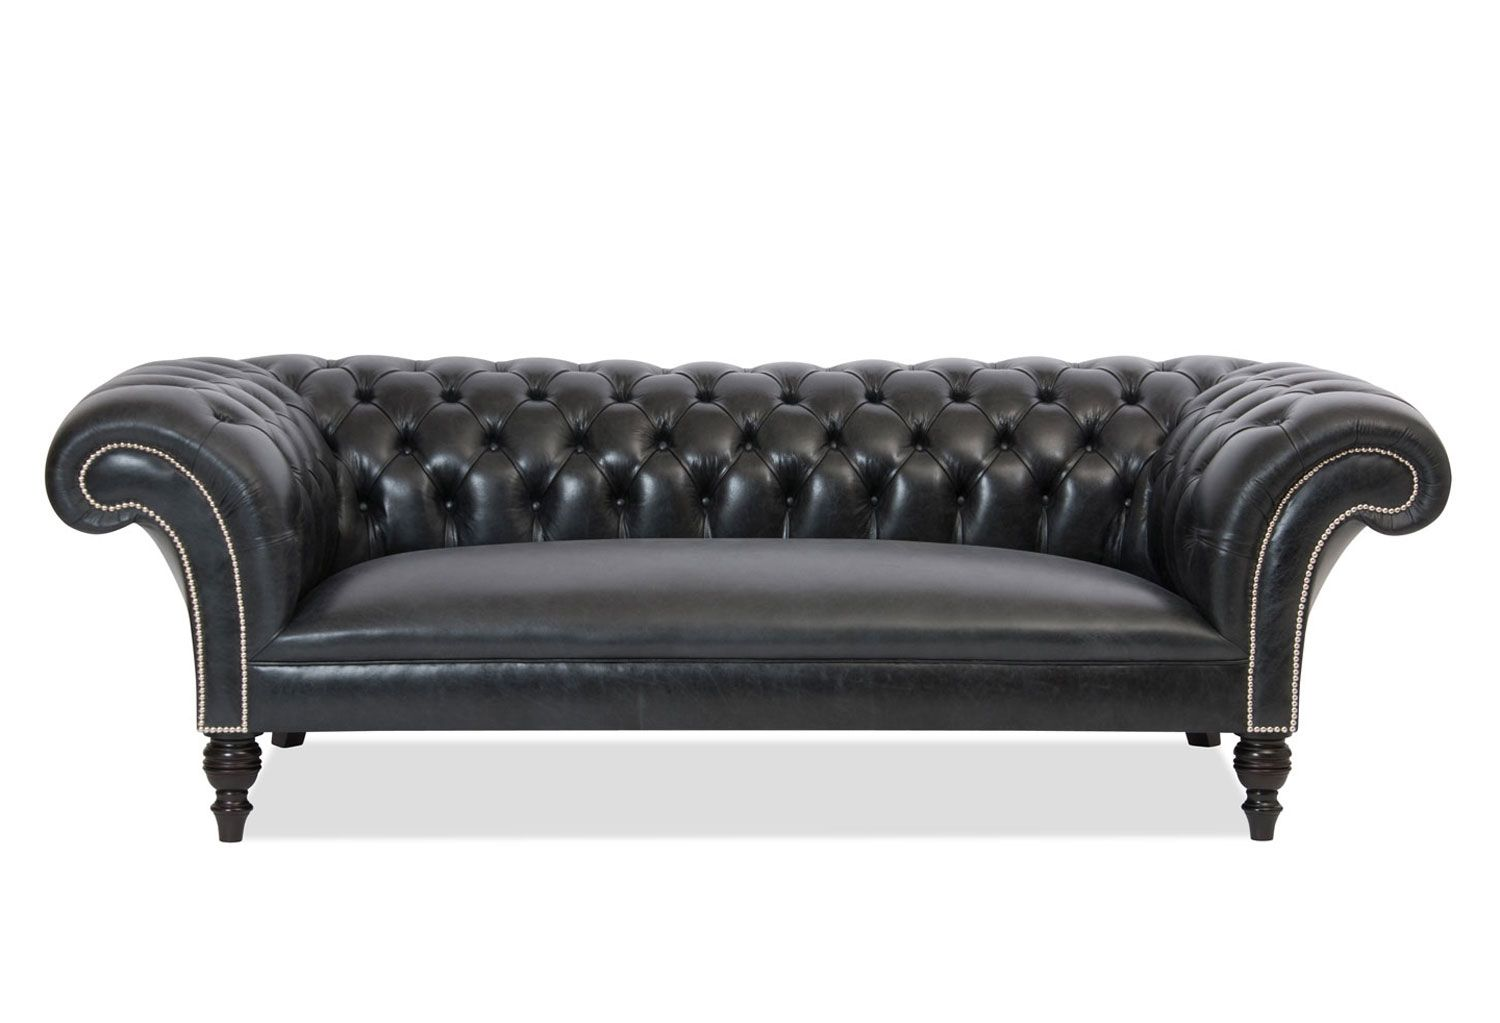 Sofa Von Wilmowsky Victorian Chesterfield Sofa Harry Chesterfield Sofas